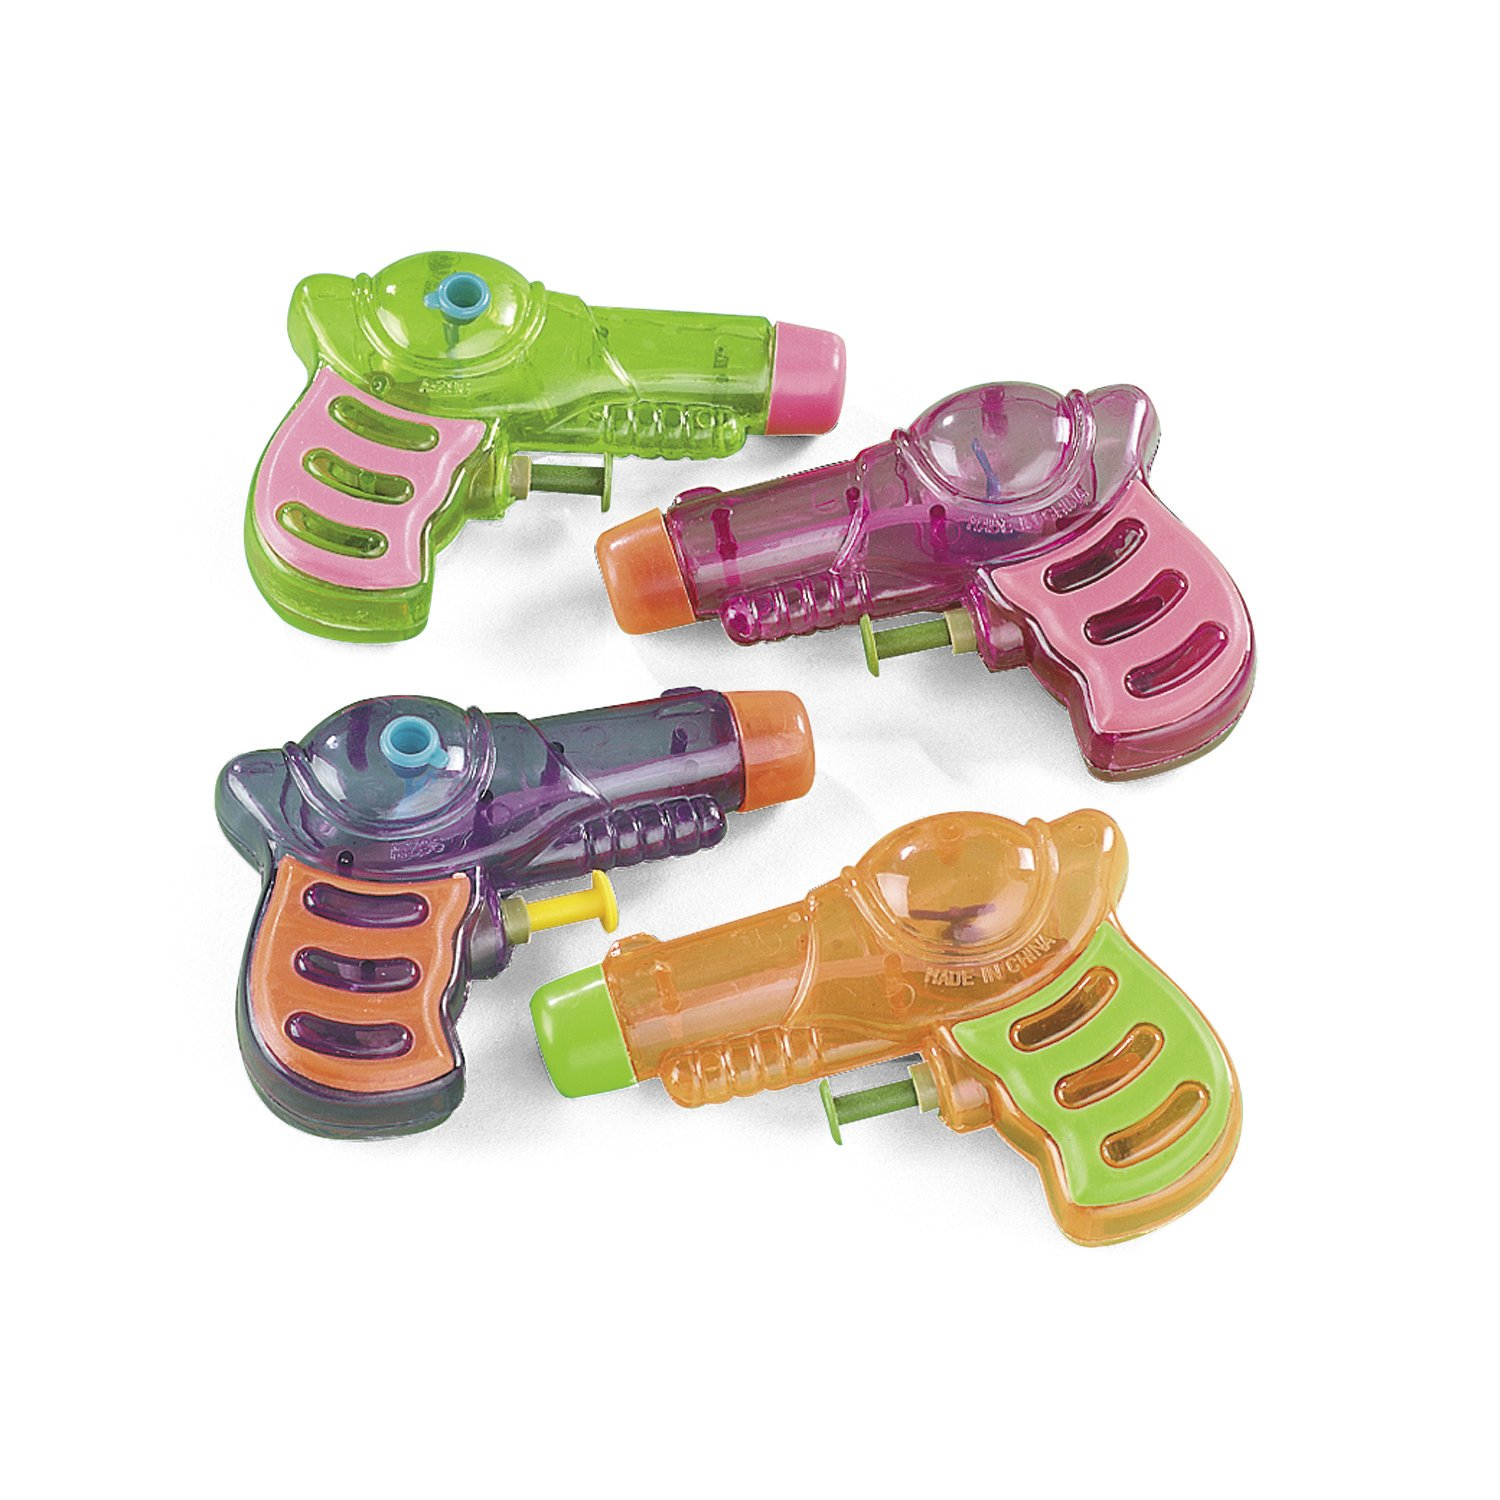 Neon Grip Squirt Guns